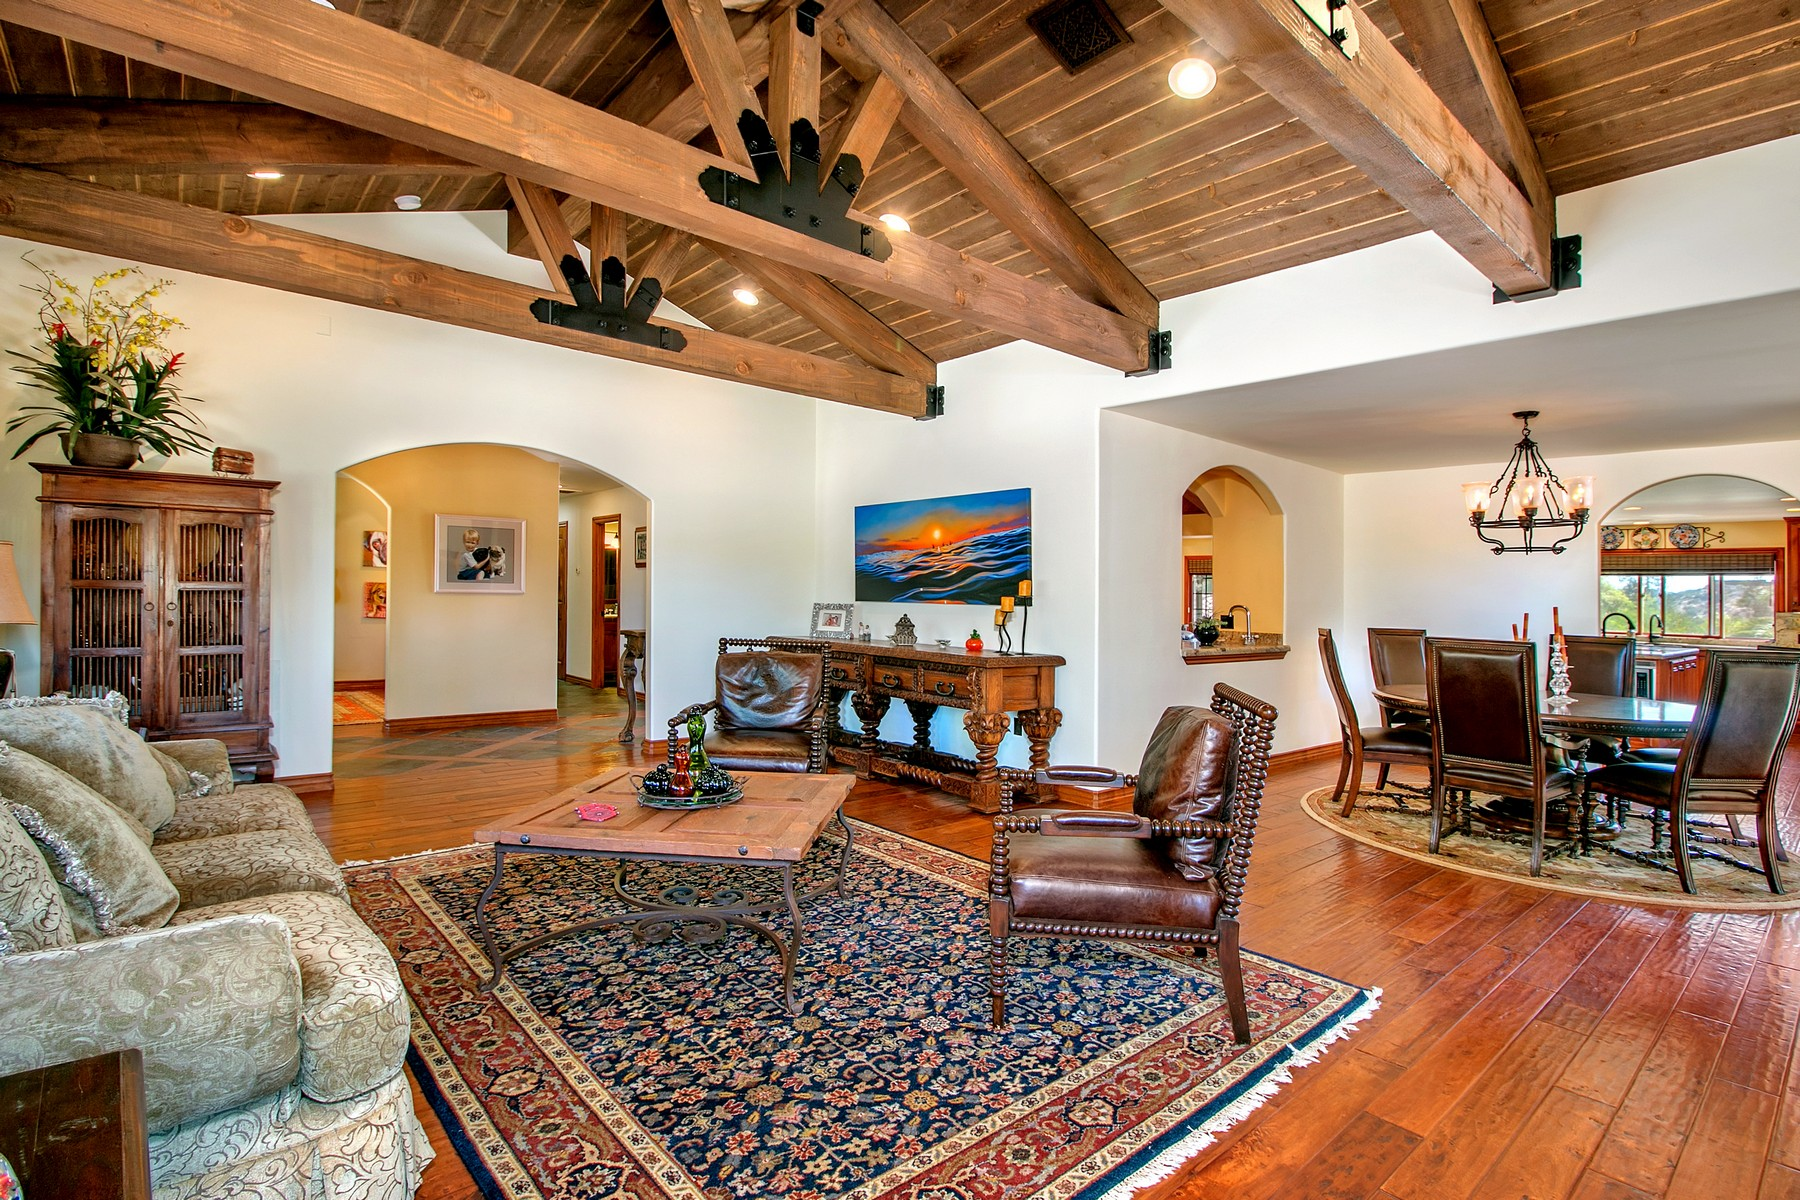 Additional photo for property listing at 7211 Siete Leguas  Rancho Santa Fe, California 92067 United States